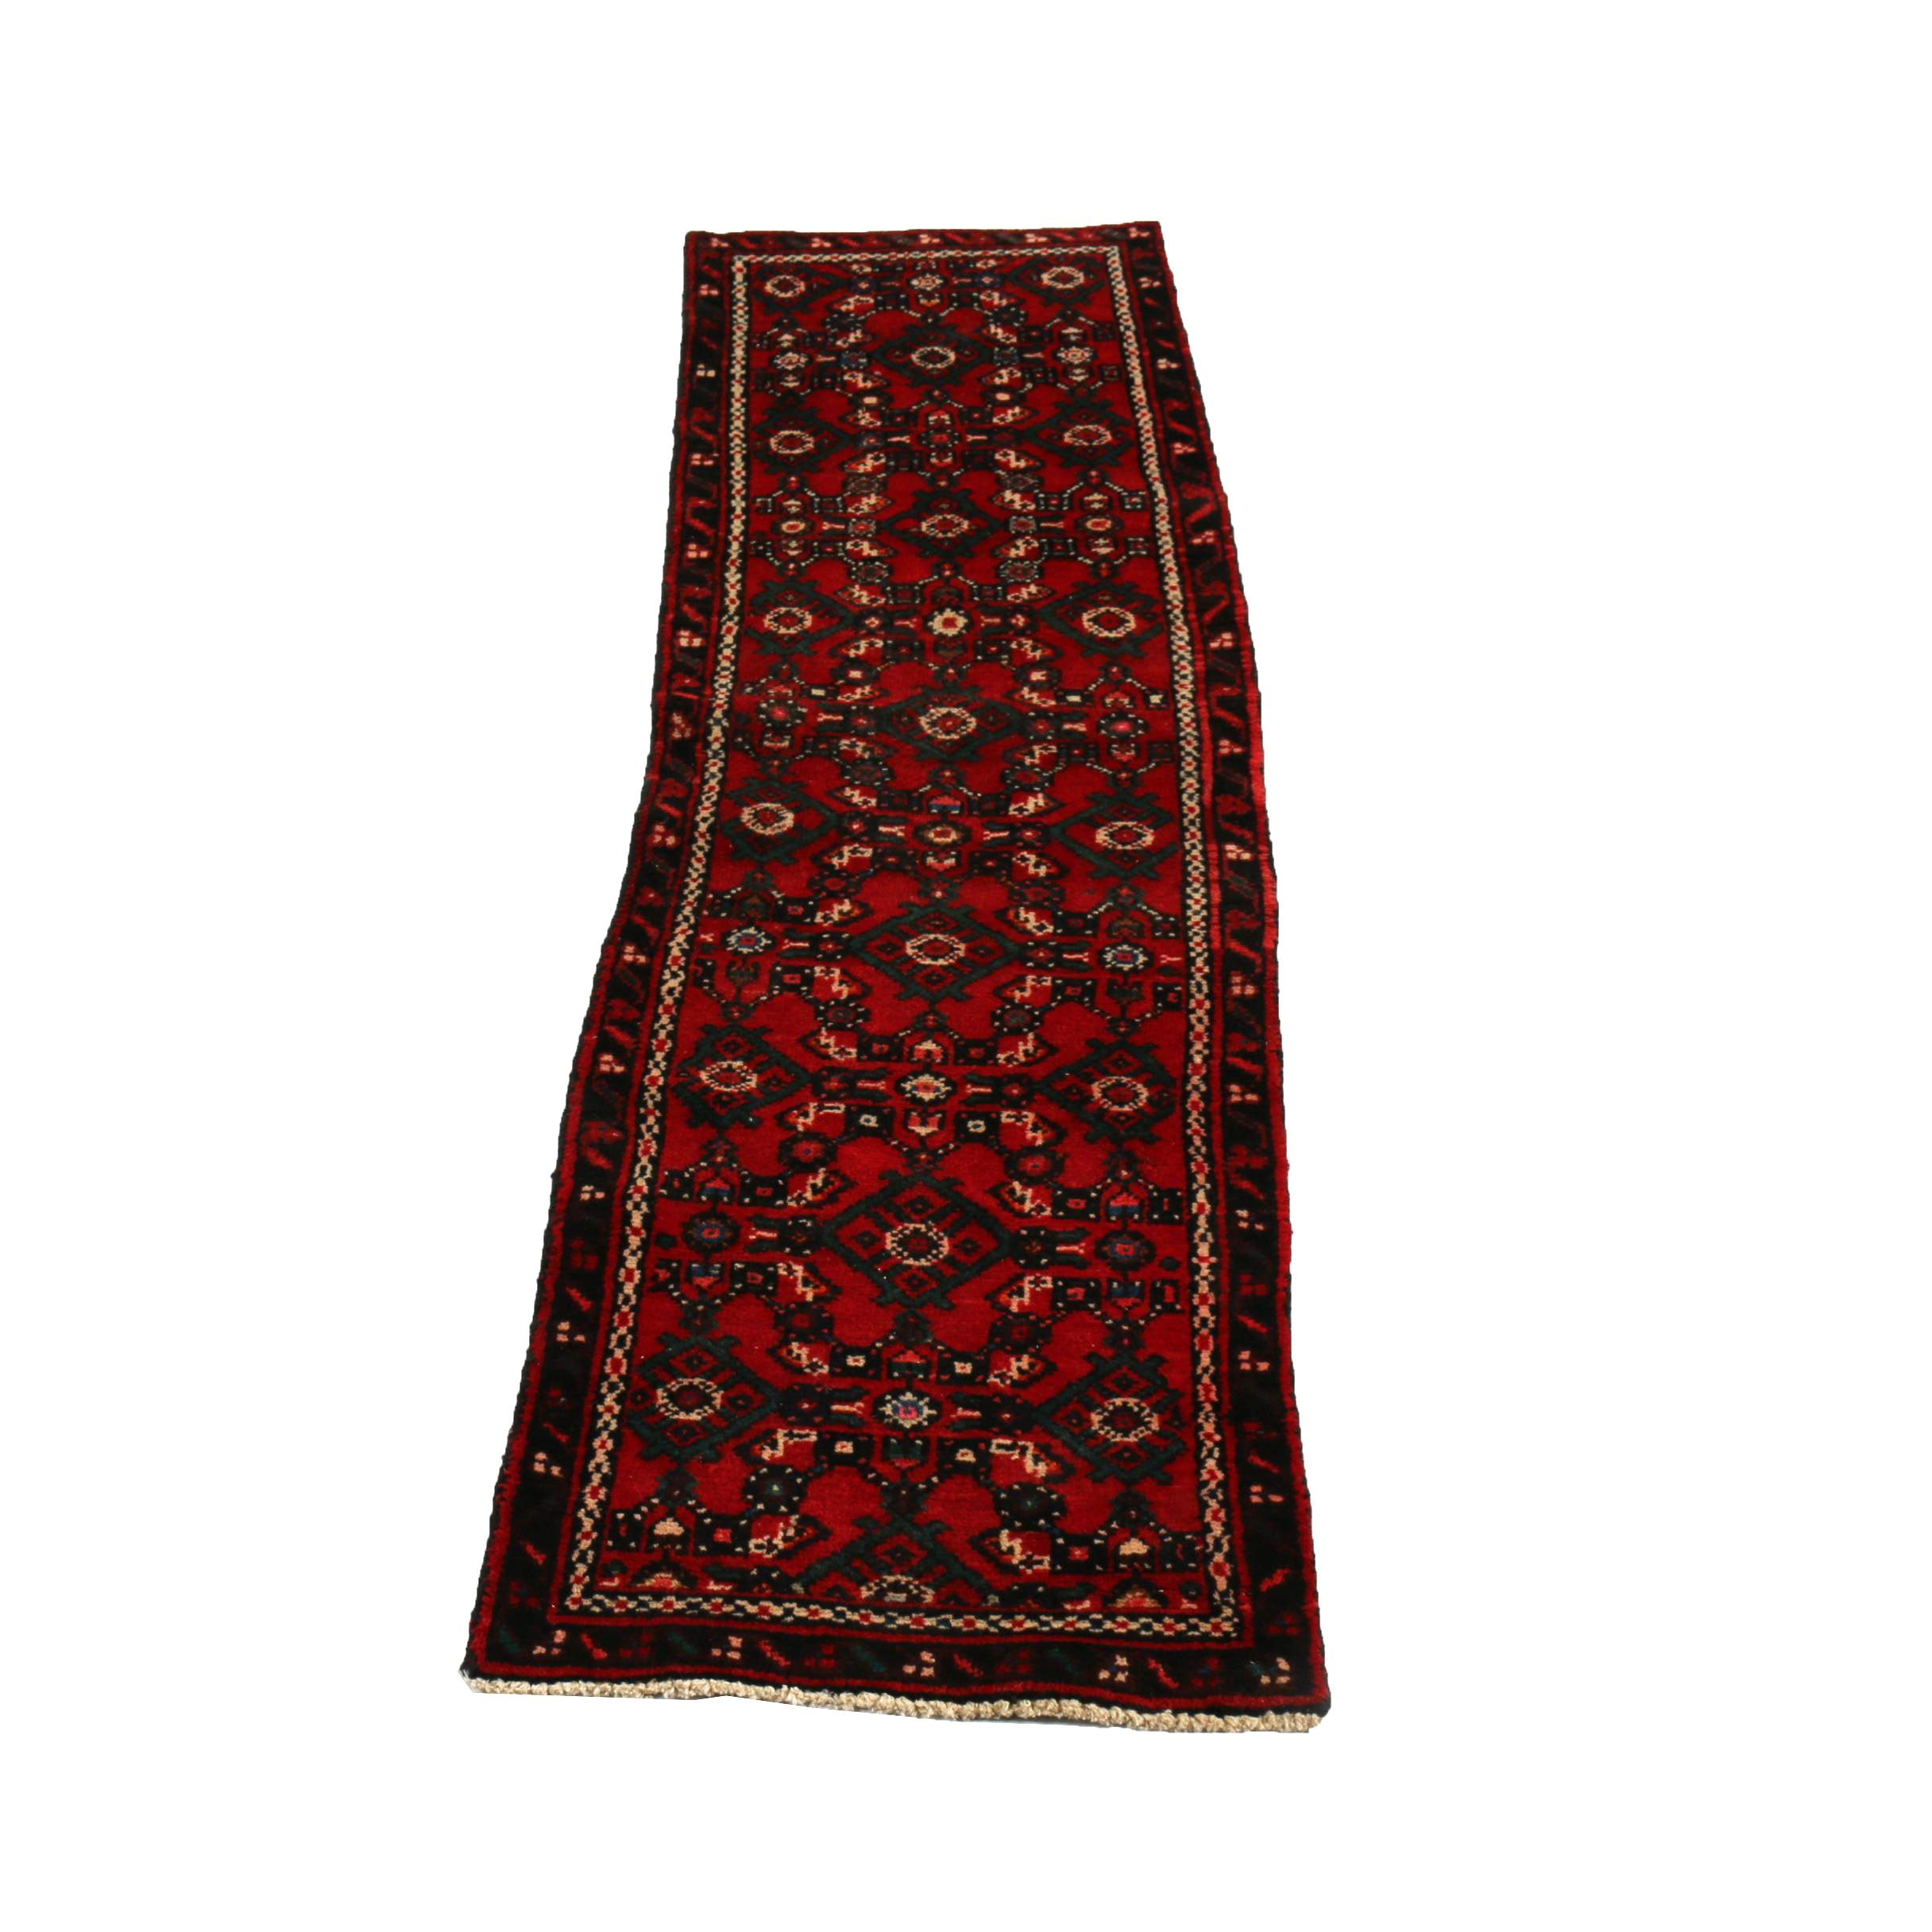 Hand-Knotted Persian Lilihan Wool Carpet Runner